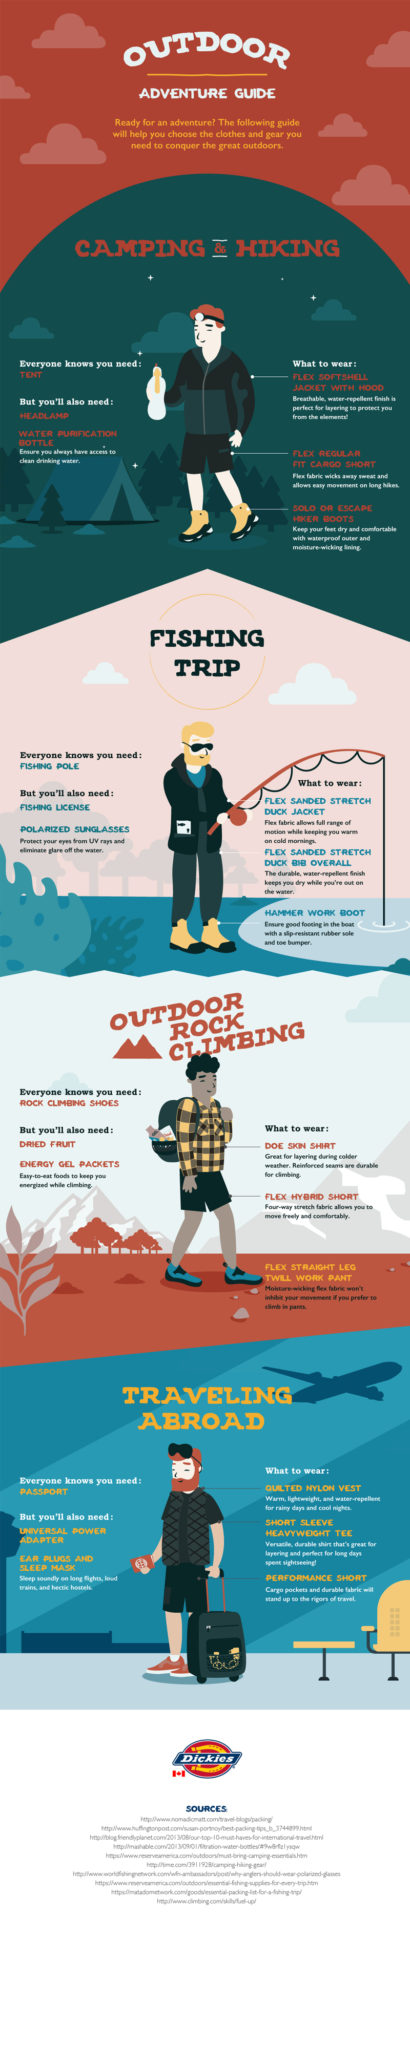 Packing tips for summer outdoor adventures